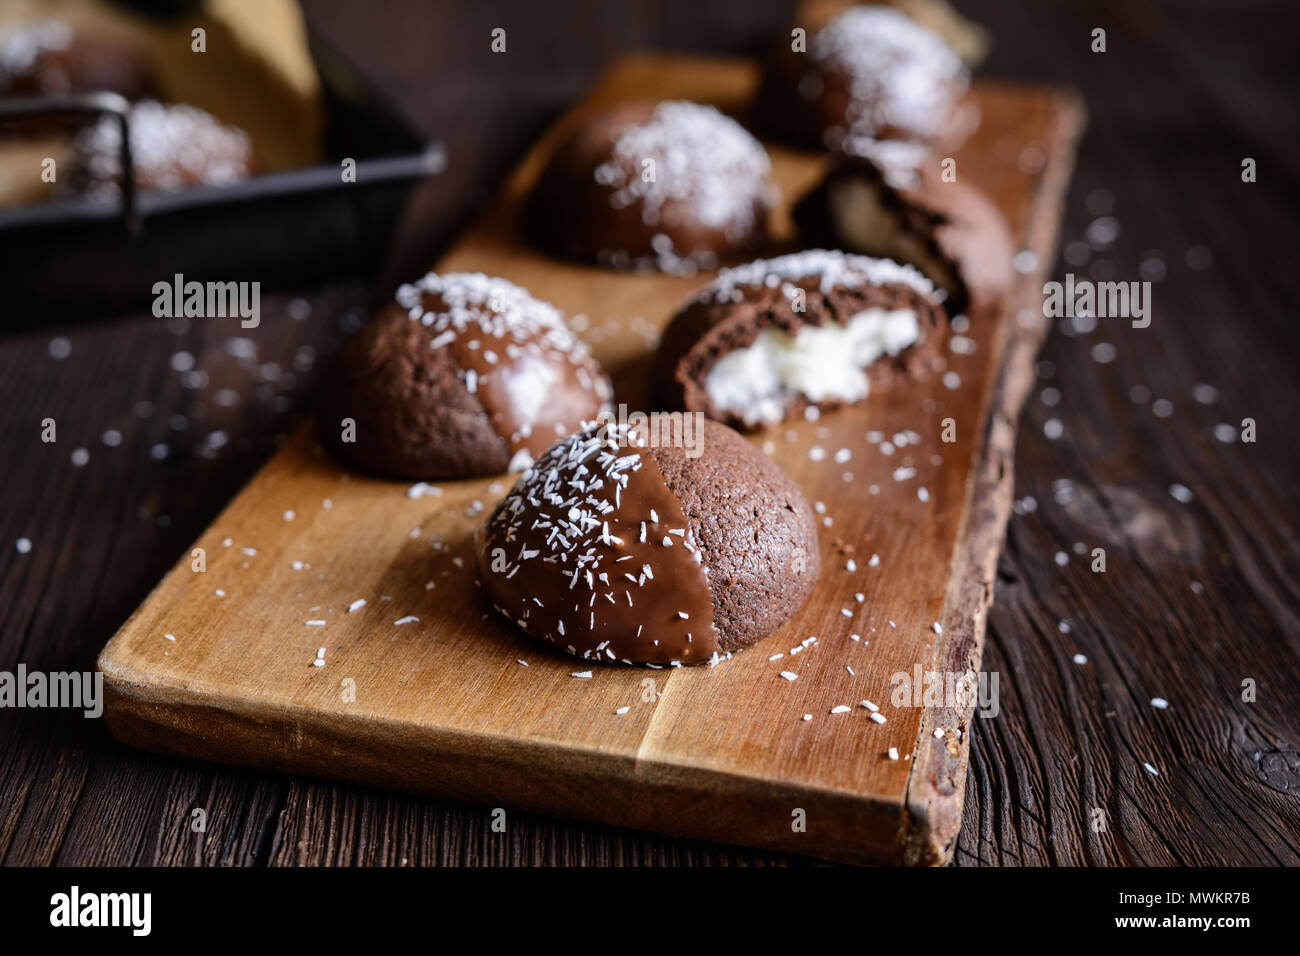 Delicious cocoa biscuits with coconut filling, decorated with chocolate and grated coconut - Stock Image